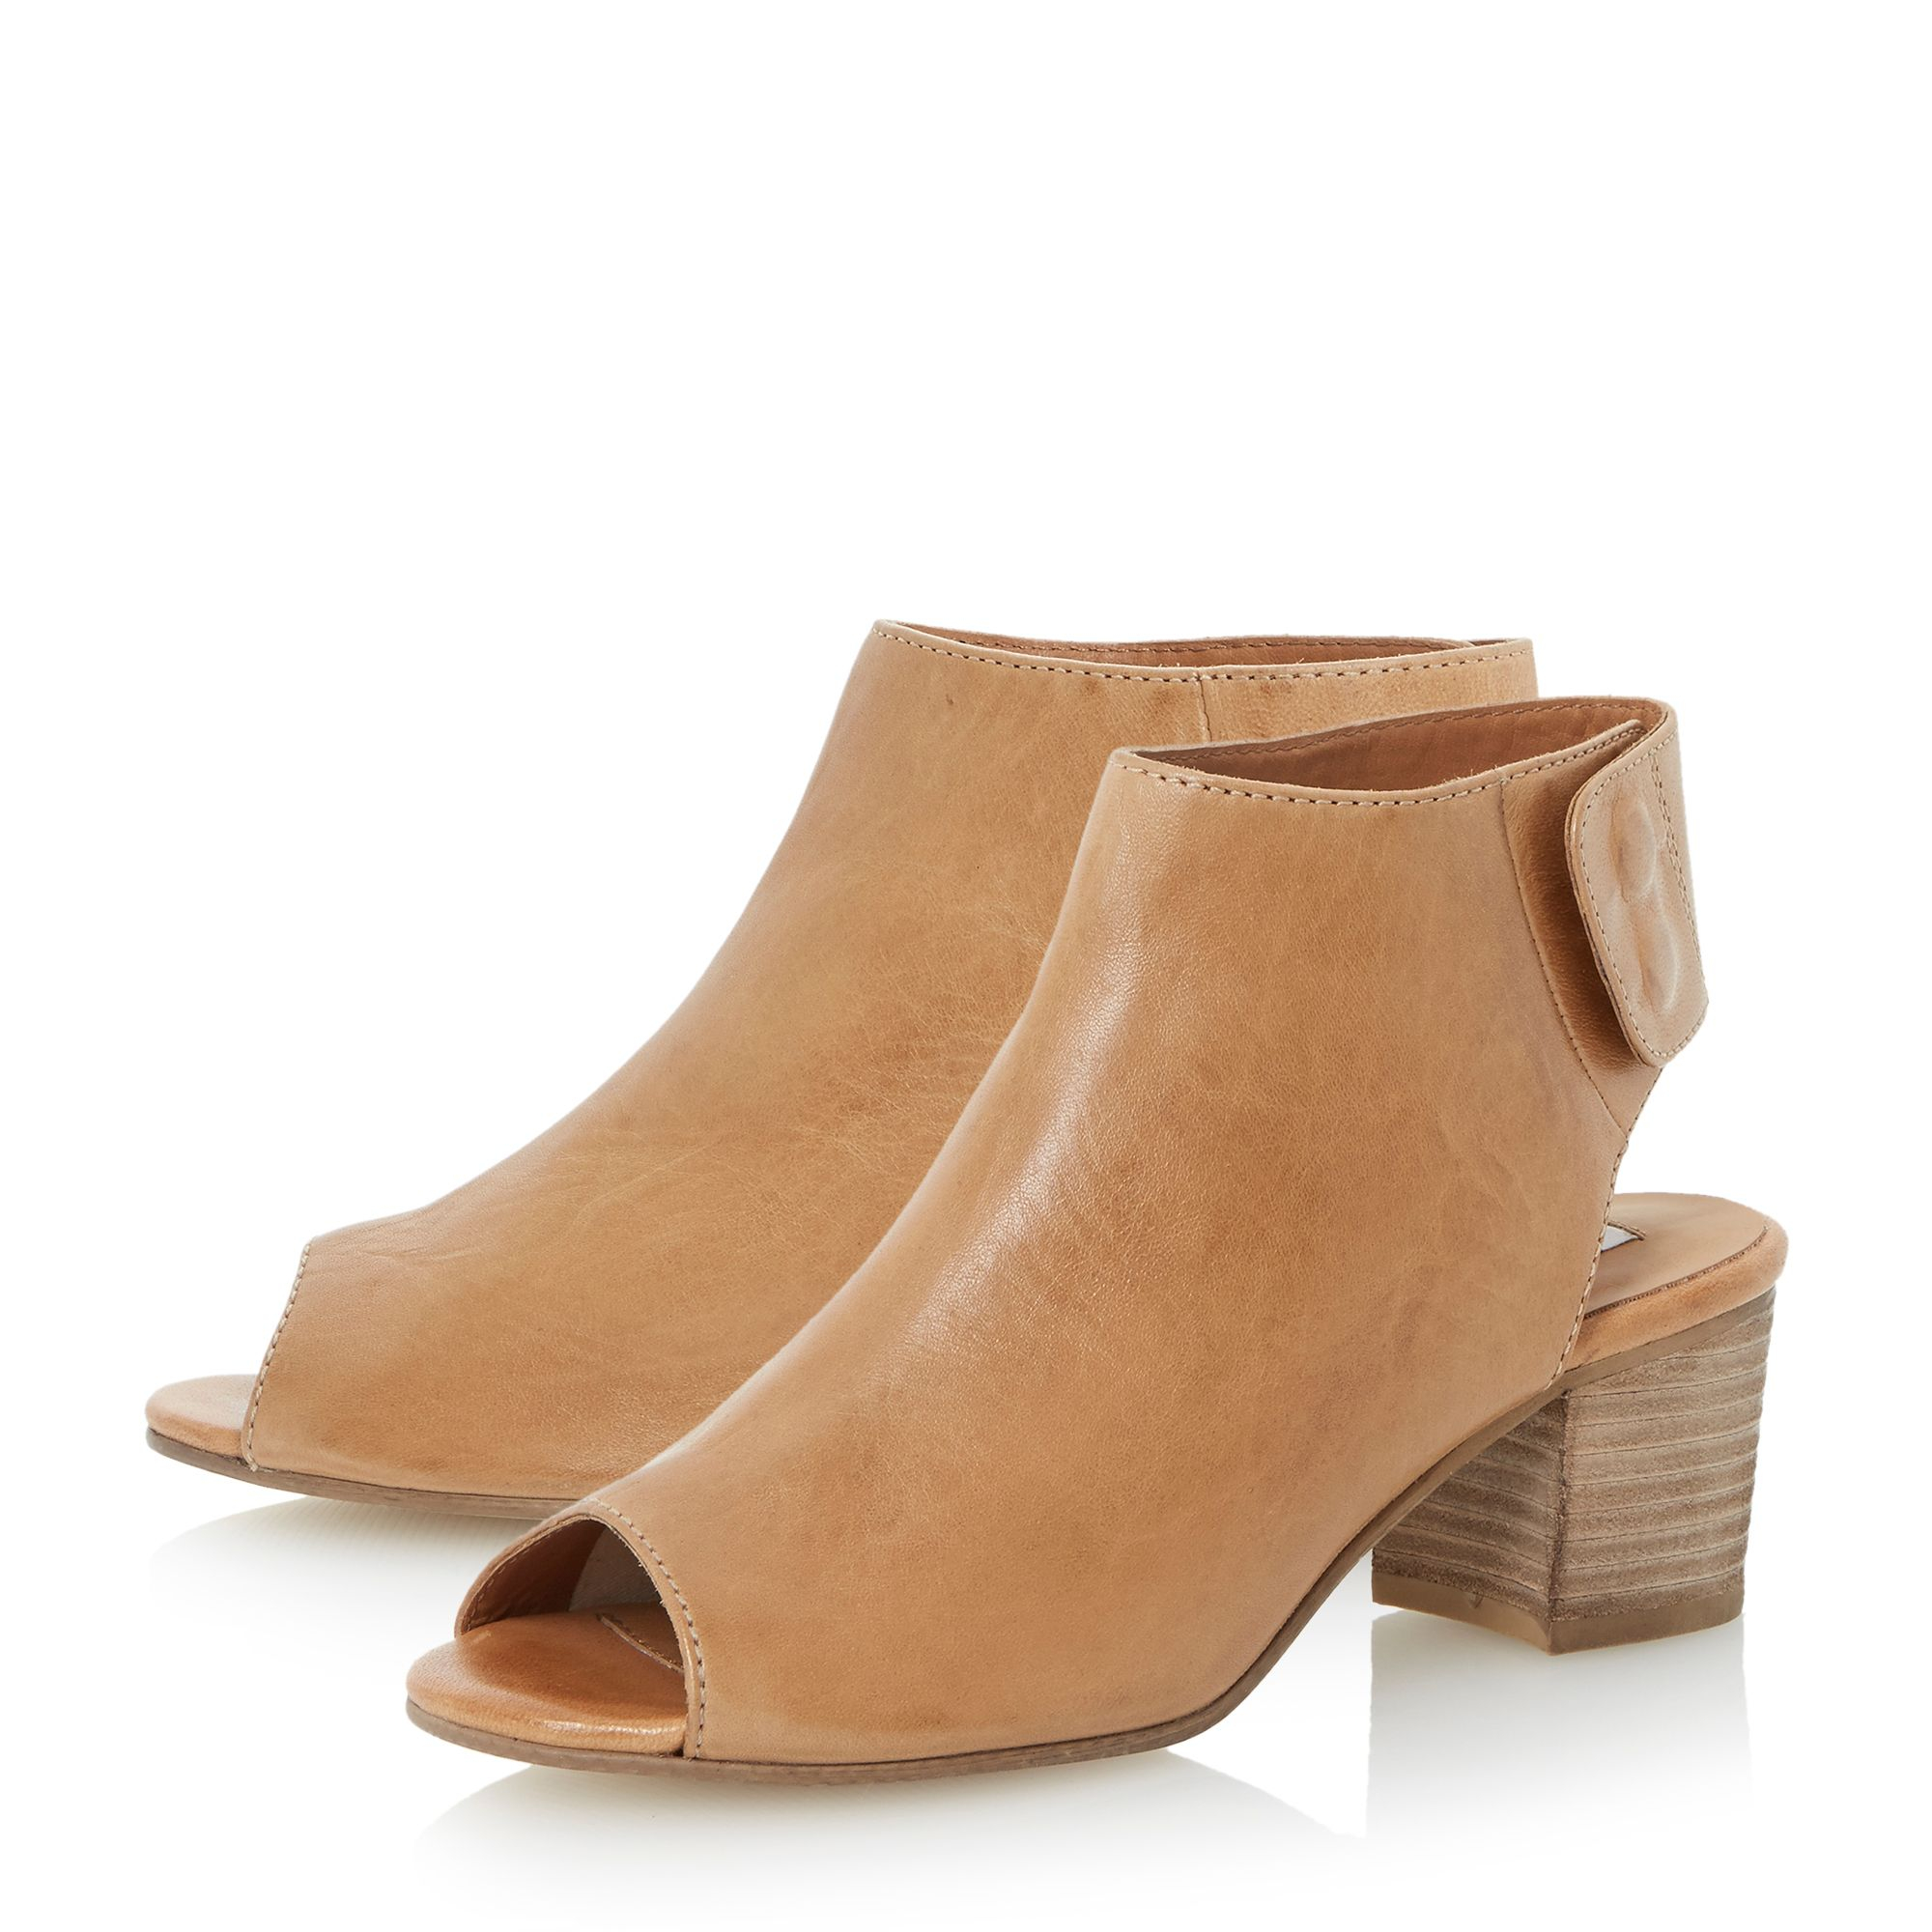 dune joanna softy shoe boot in brown lyst